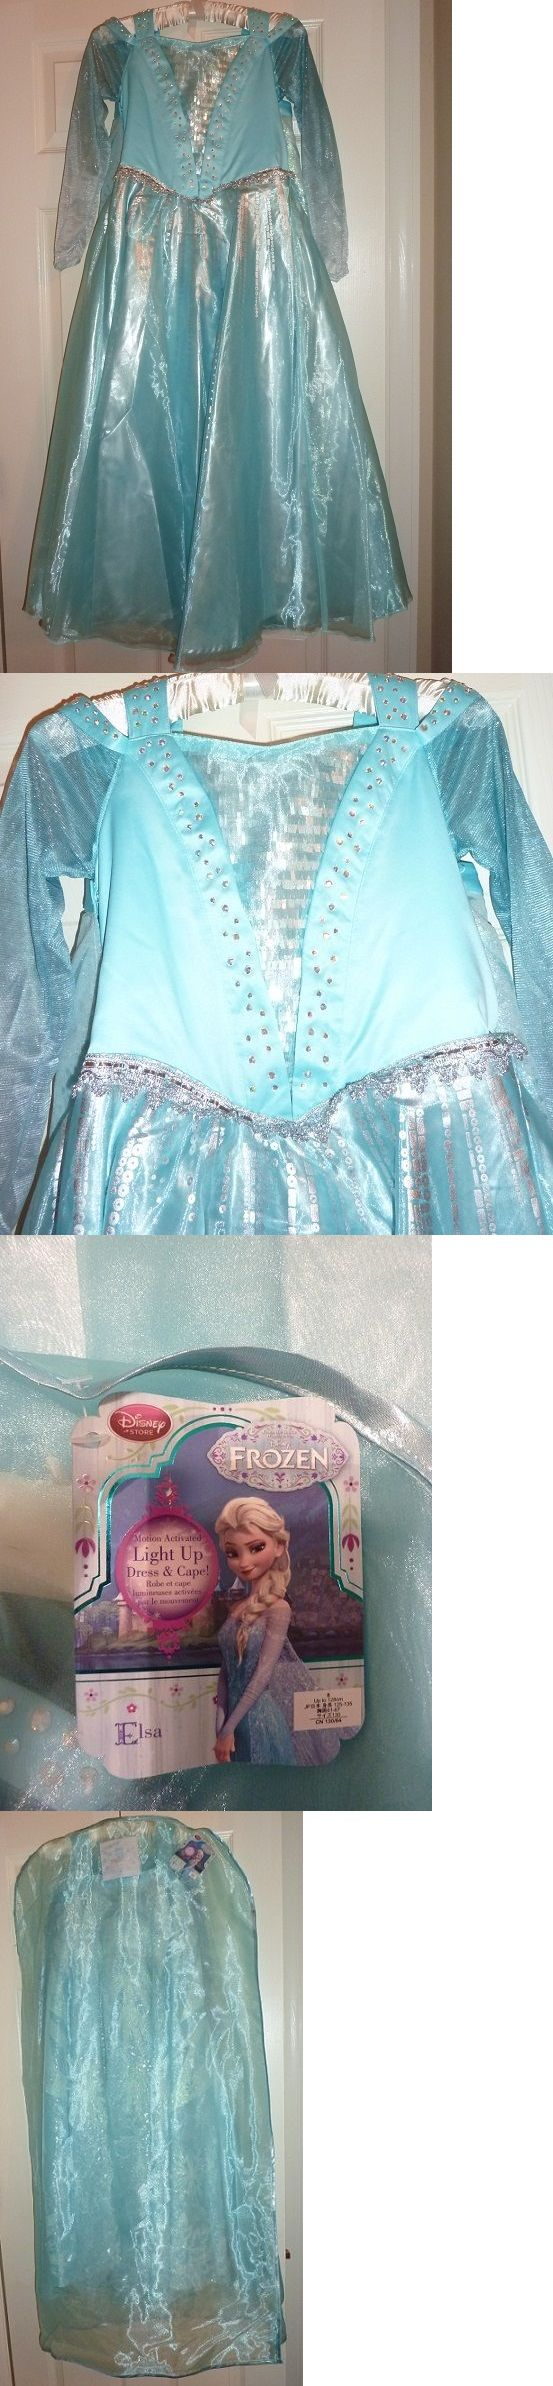 Kids Costumes: Disney Store Frozen Princess Elsa Light Up Dress And Cape, Brand New With Tags BUY IT NOW ONLY: $99.99